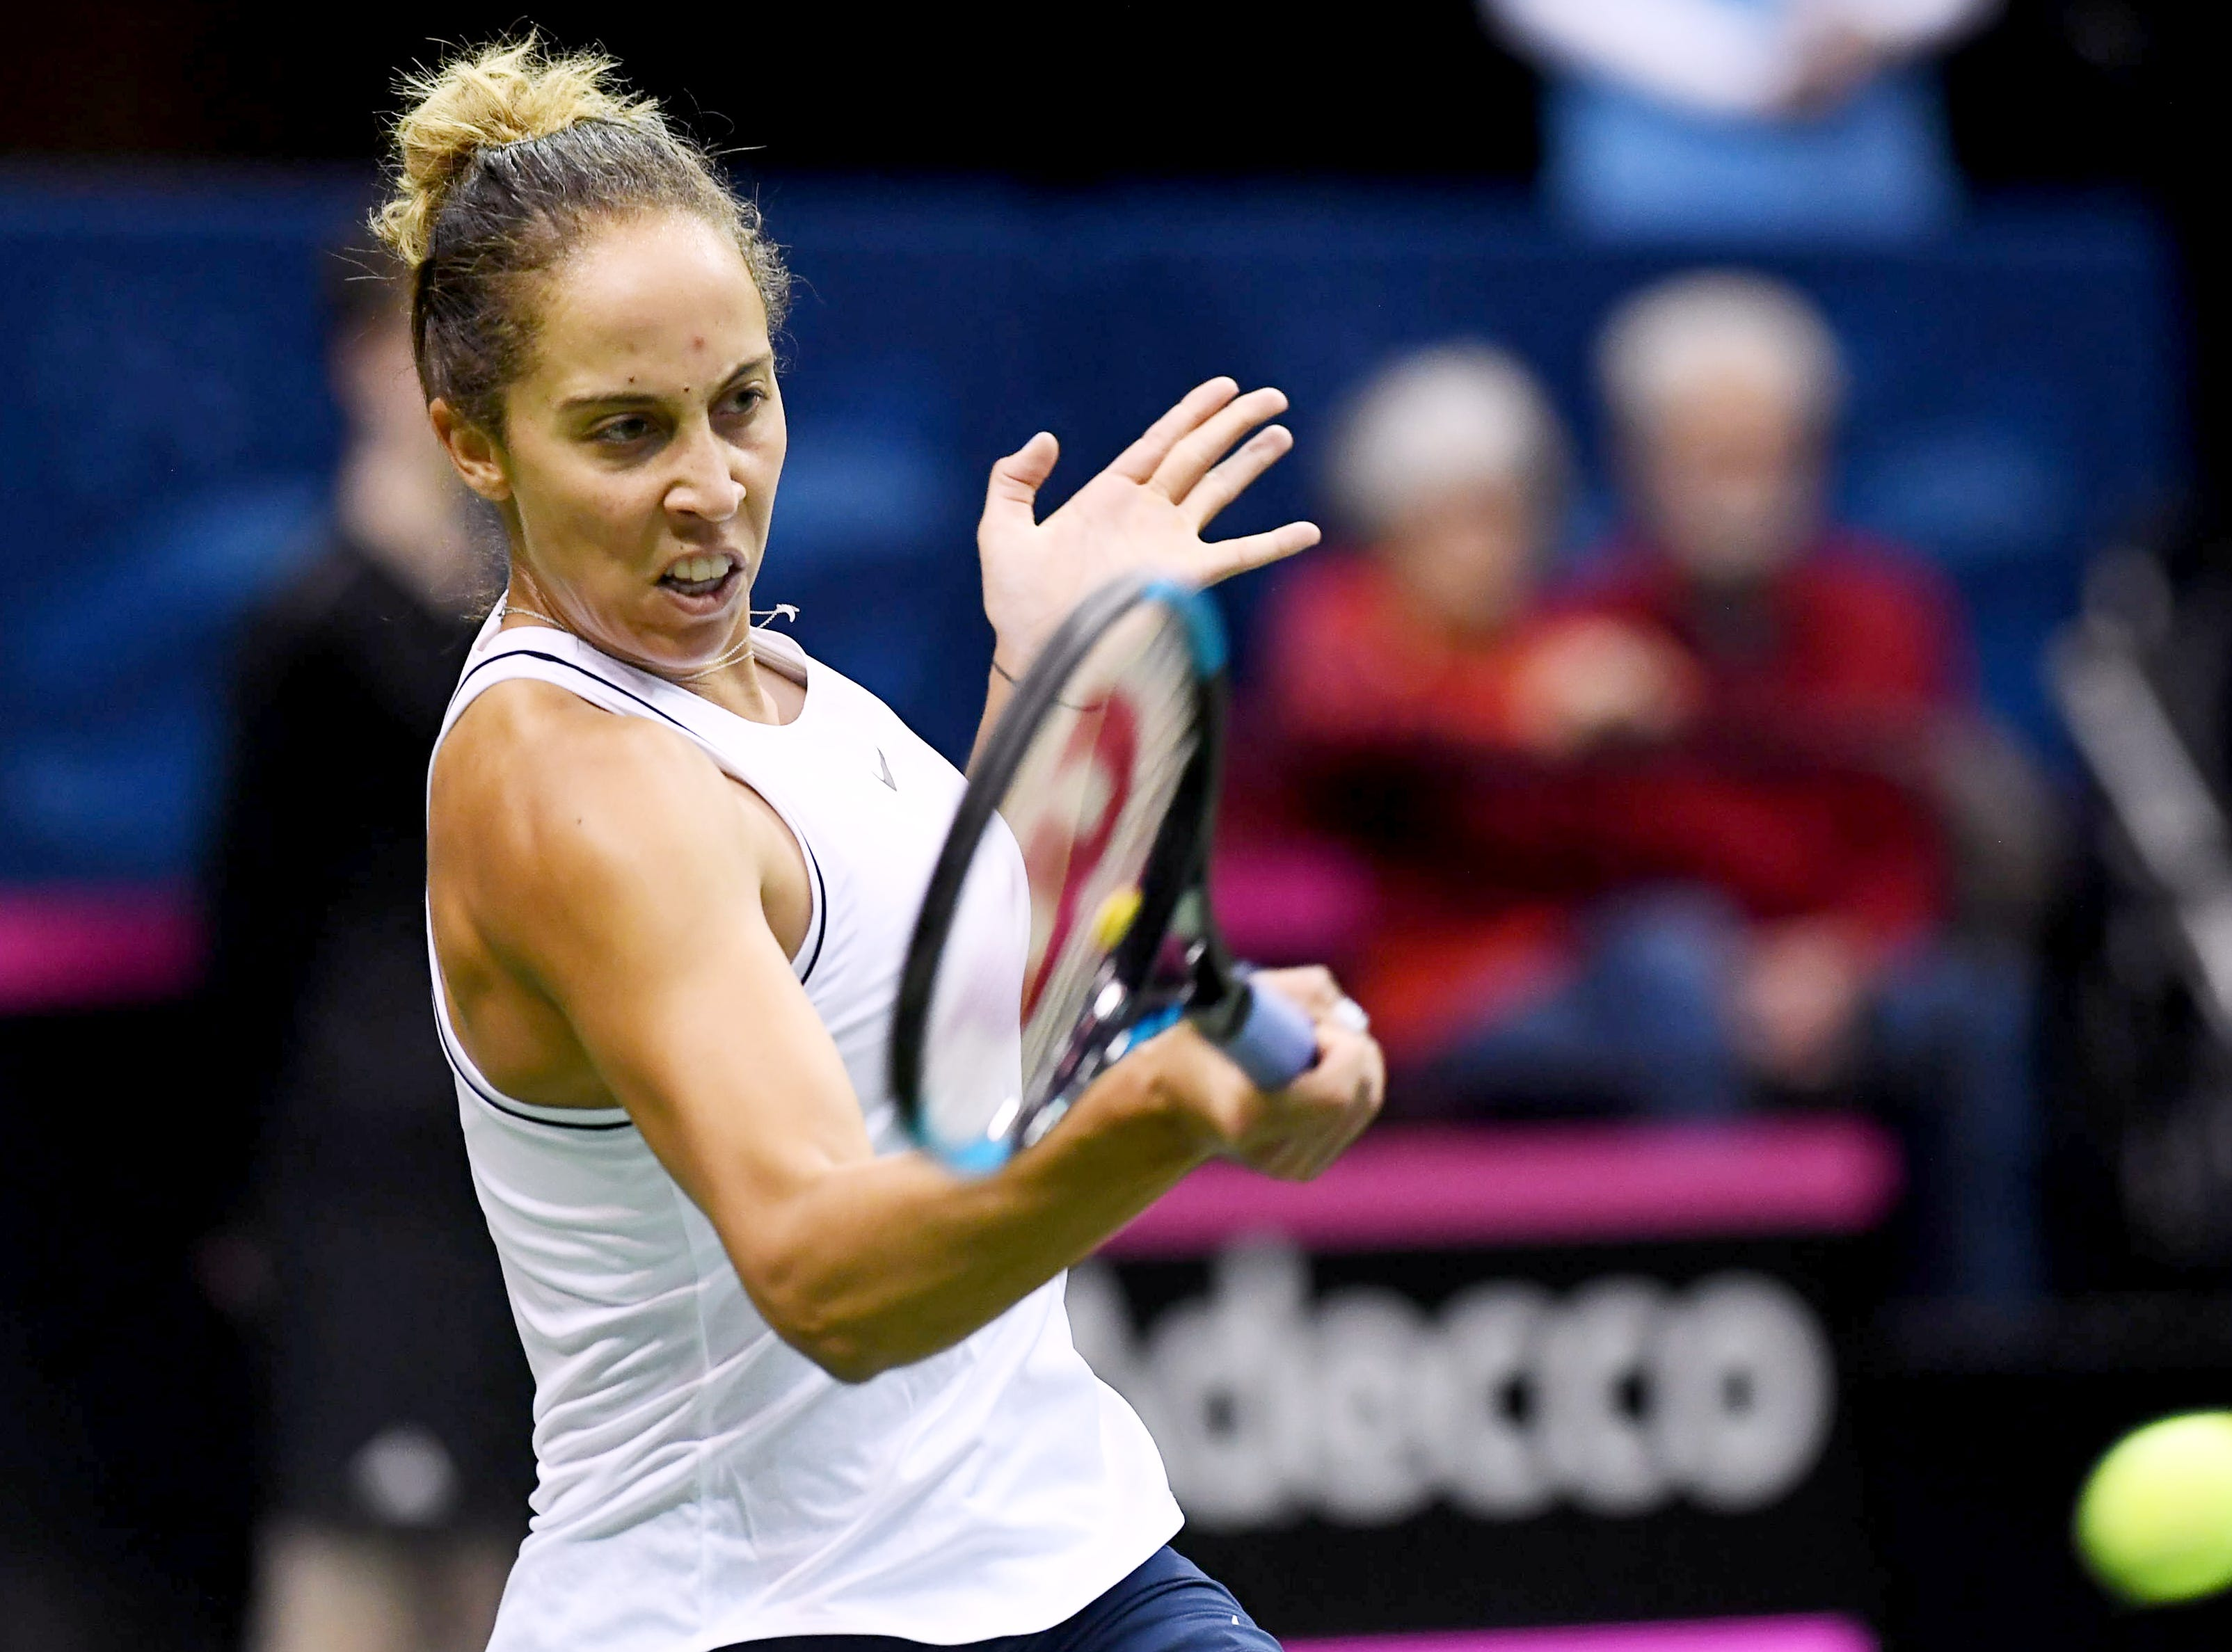 Madison Keys returns the ball in the Fed Cup match against Australia Feb. 9, 2019 at the US Cellular Center in Asheville.